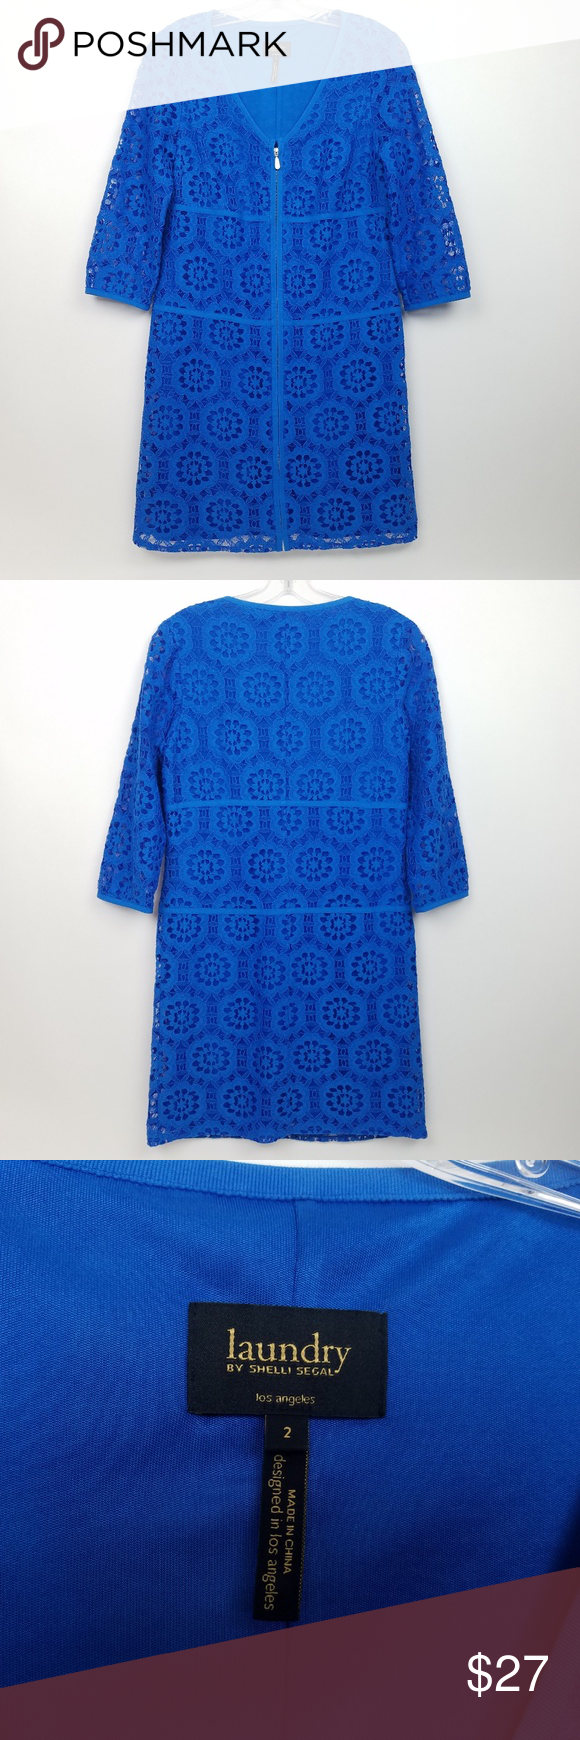 Laundry By Shelli Segal Women S Full Zip 3 4 Cobal Laundry By Shelli Segal Women S Full Zip 3 4 Cobalt Lace S Clothes Design Lace Shift Dress Fashion